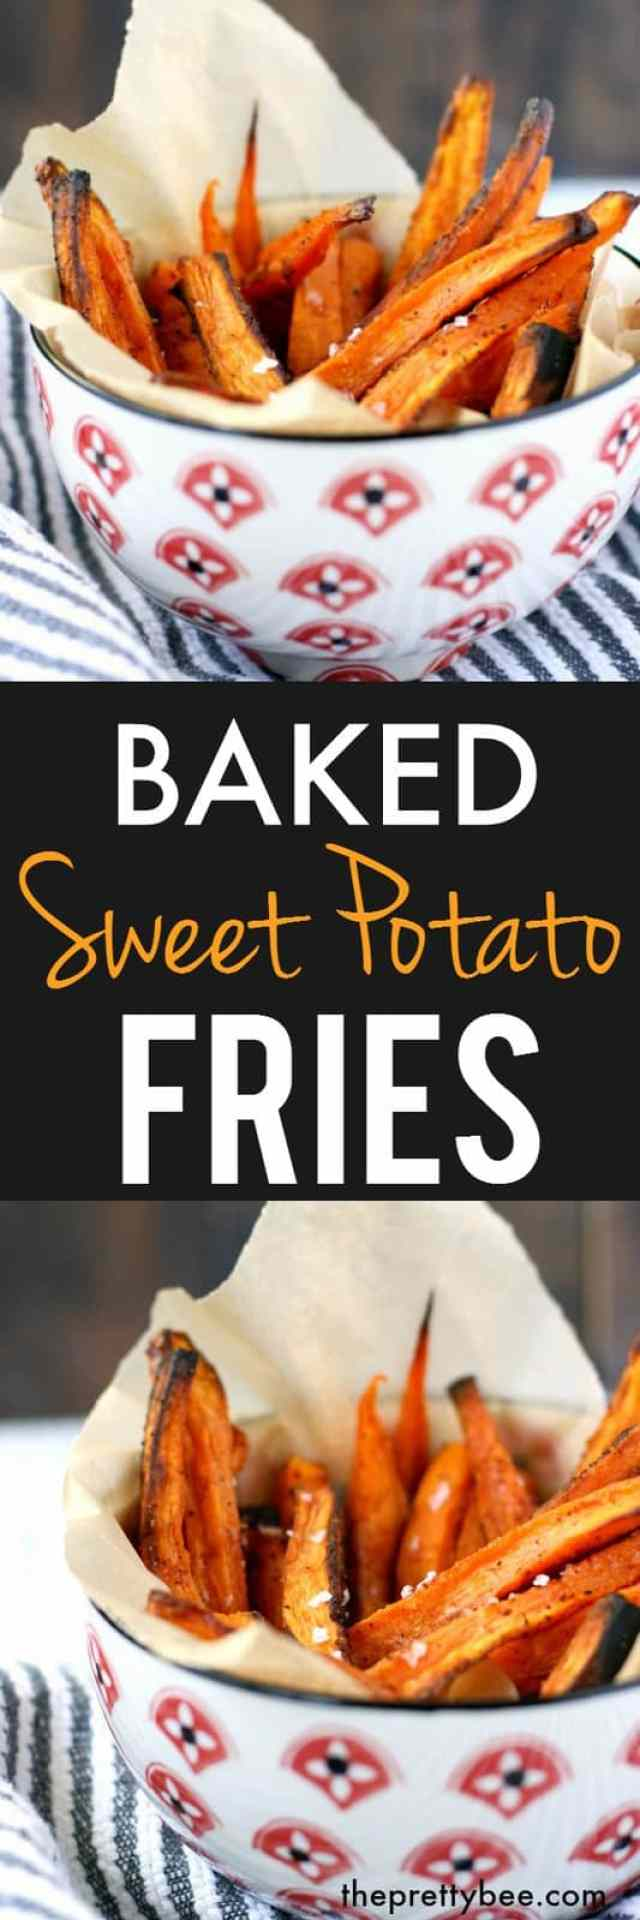 Simple, healthy, delicious sweet potato fries.